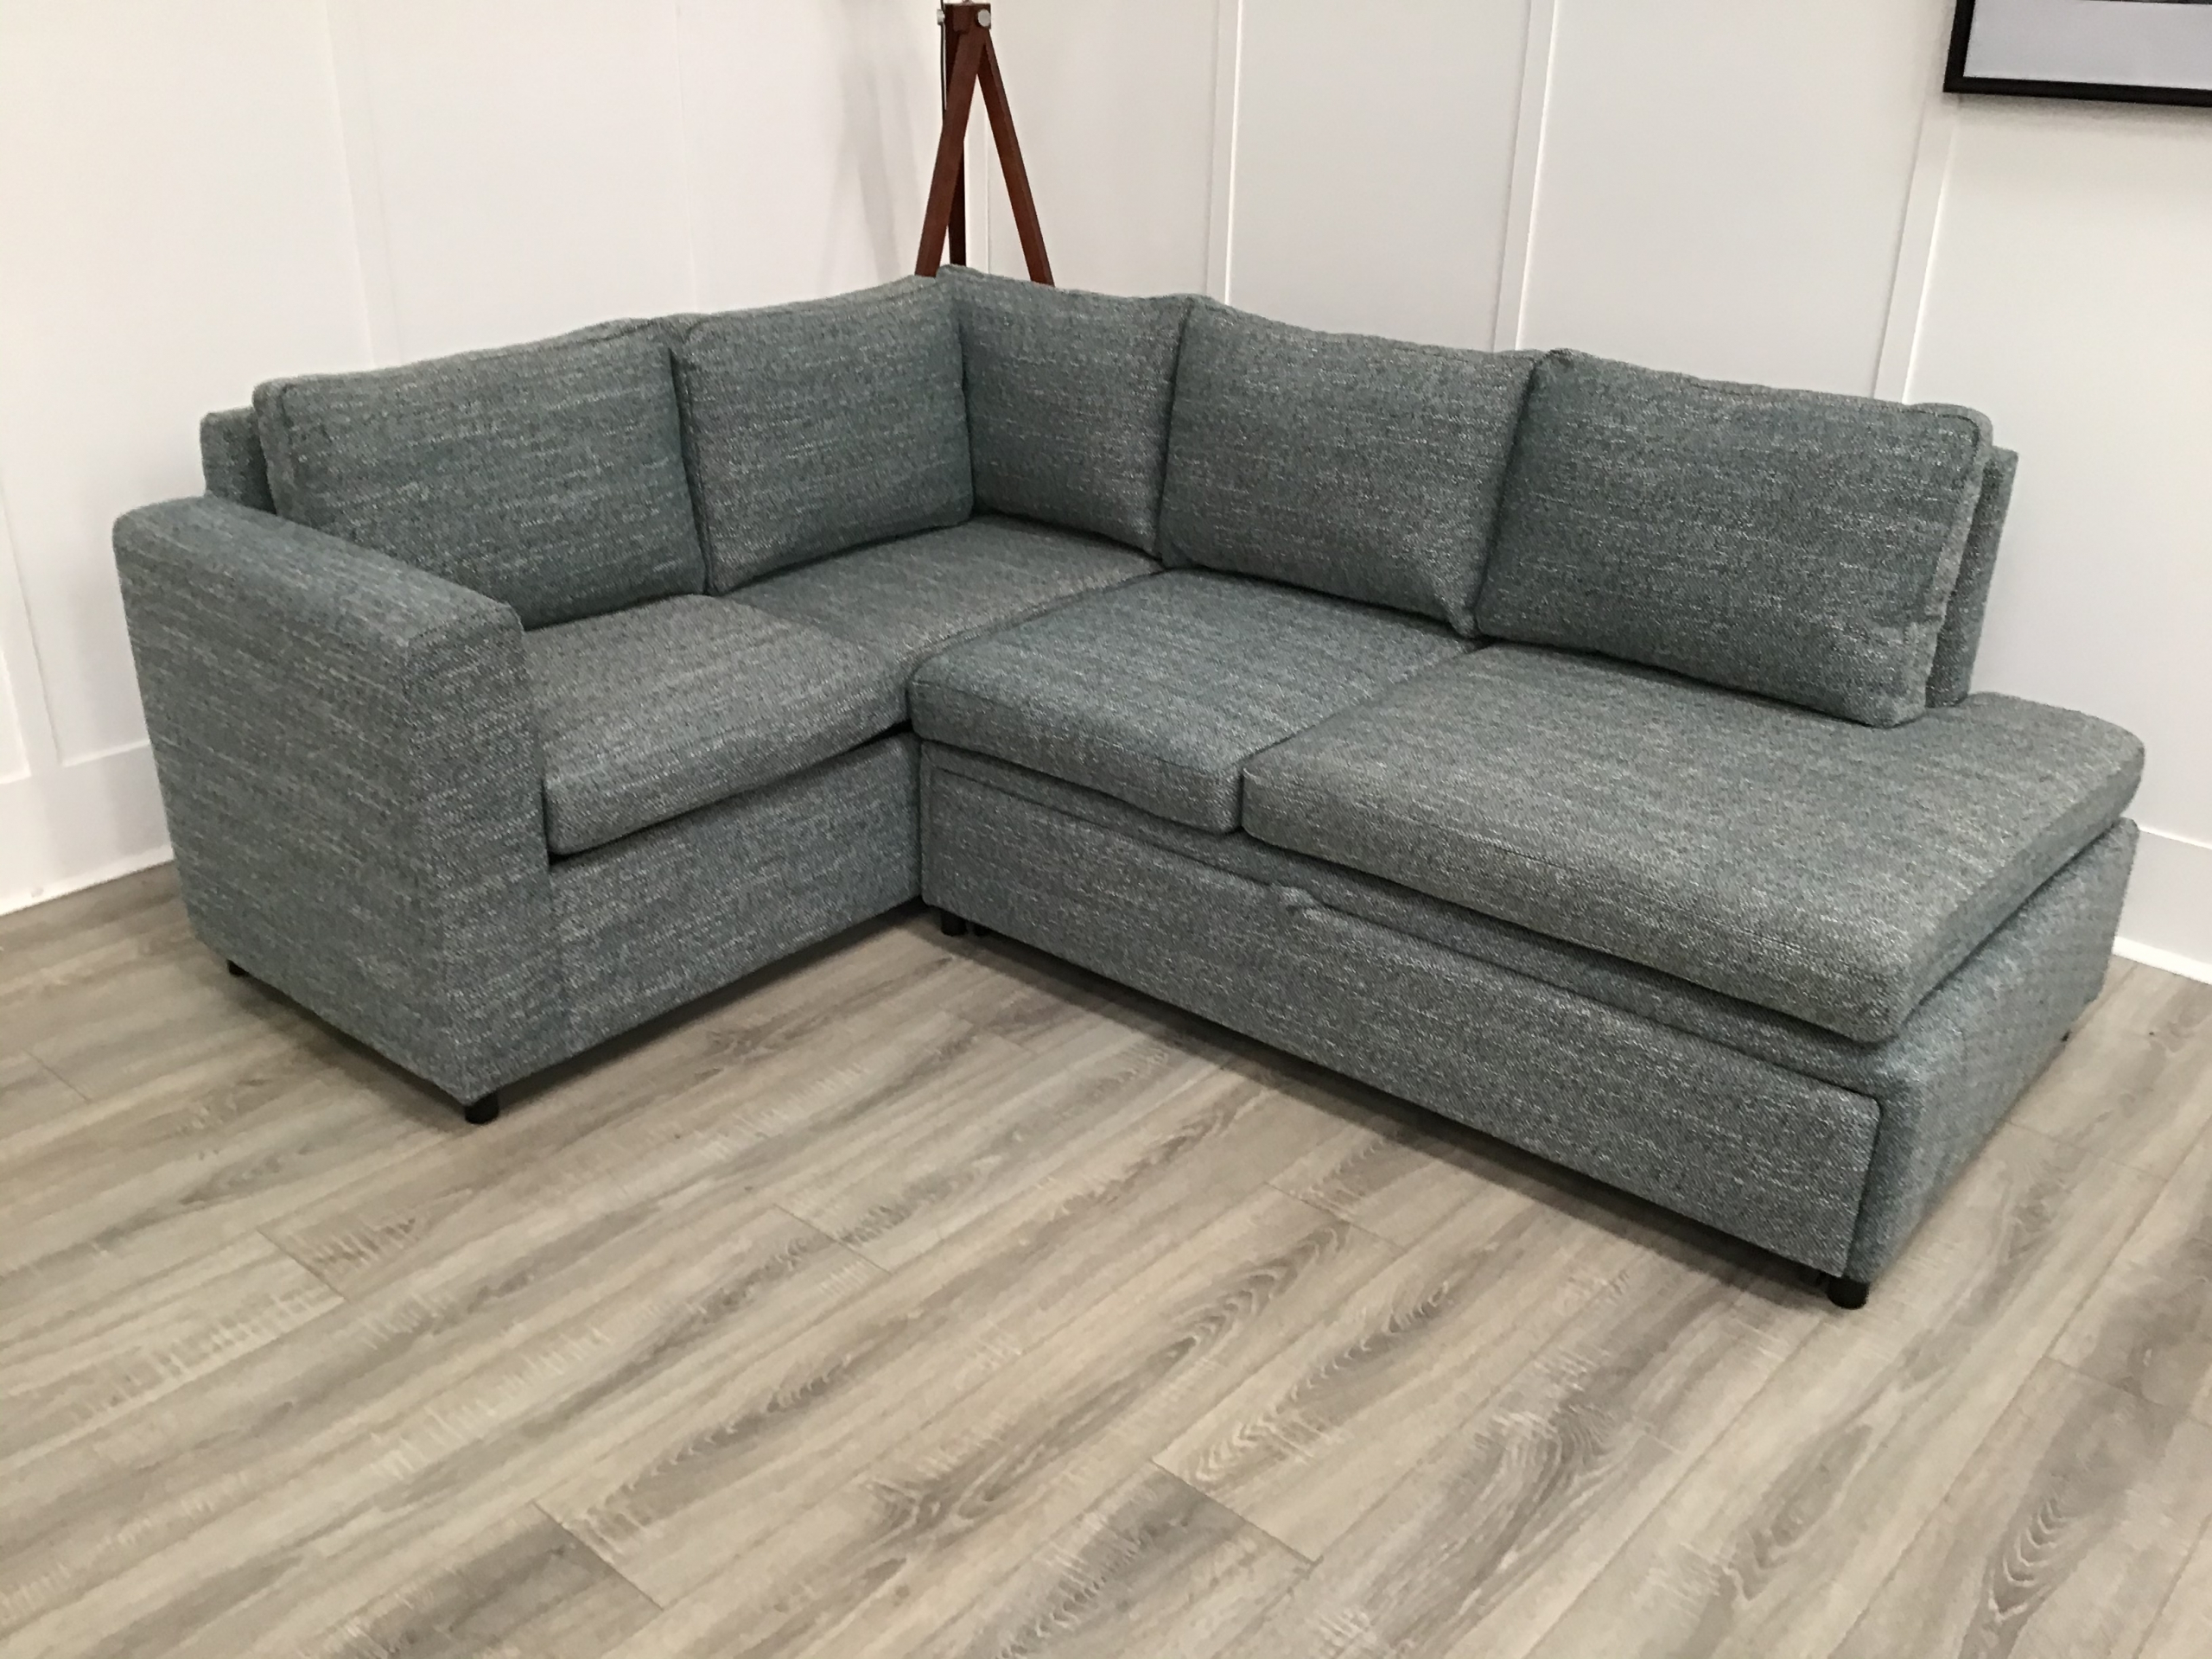 Celine Sectional Futon Sofas With Storage Reclining Couch Inside Current Central Corner Sofa Bed With Storage In Green Fabric (View 1 of 20)